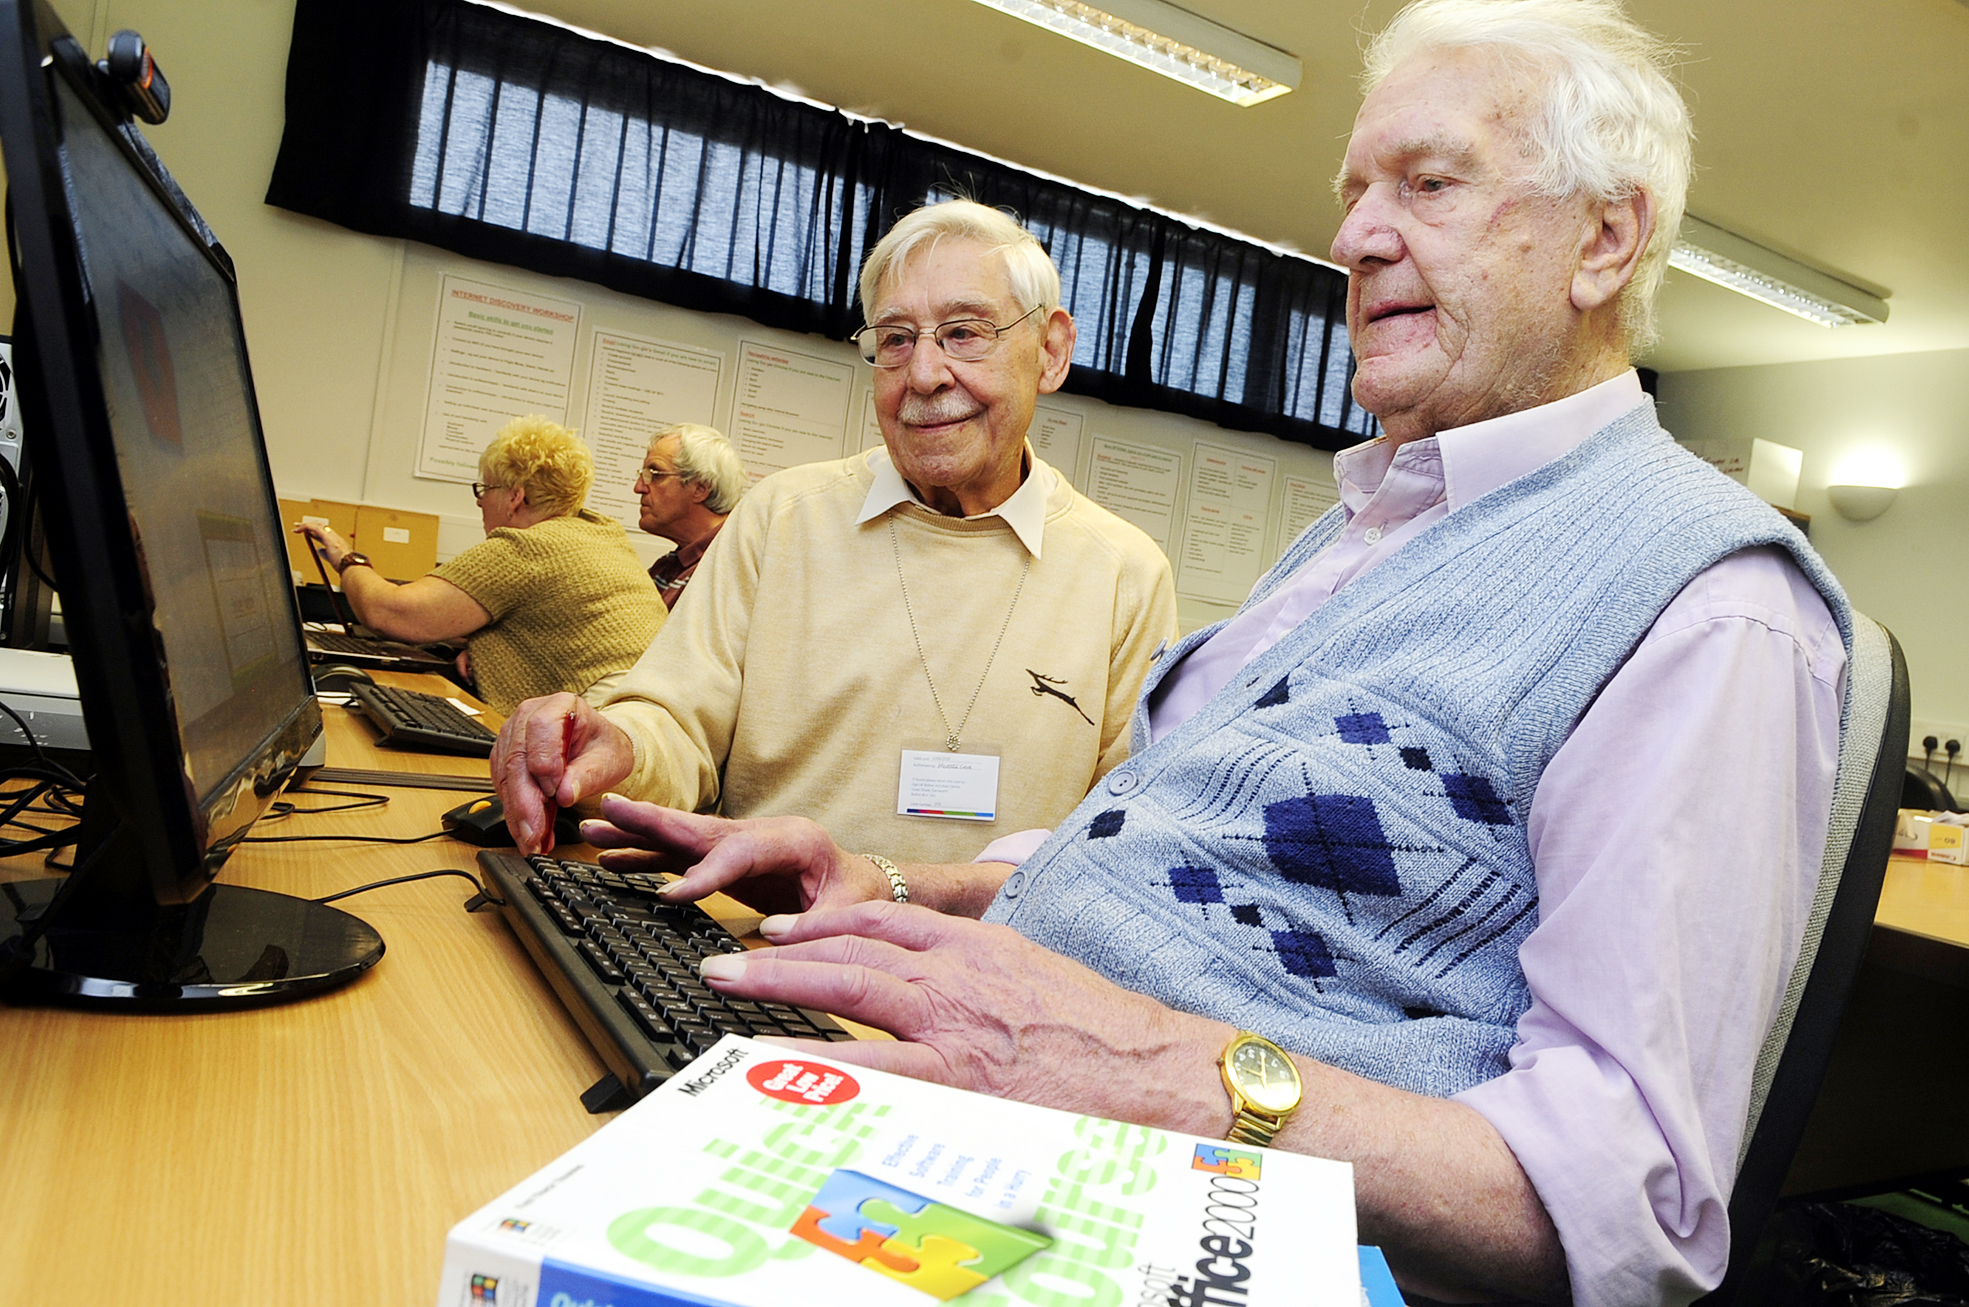 New tricks? 90-year-old sets up website with help from 91-year-old pal